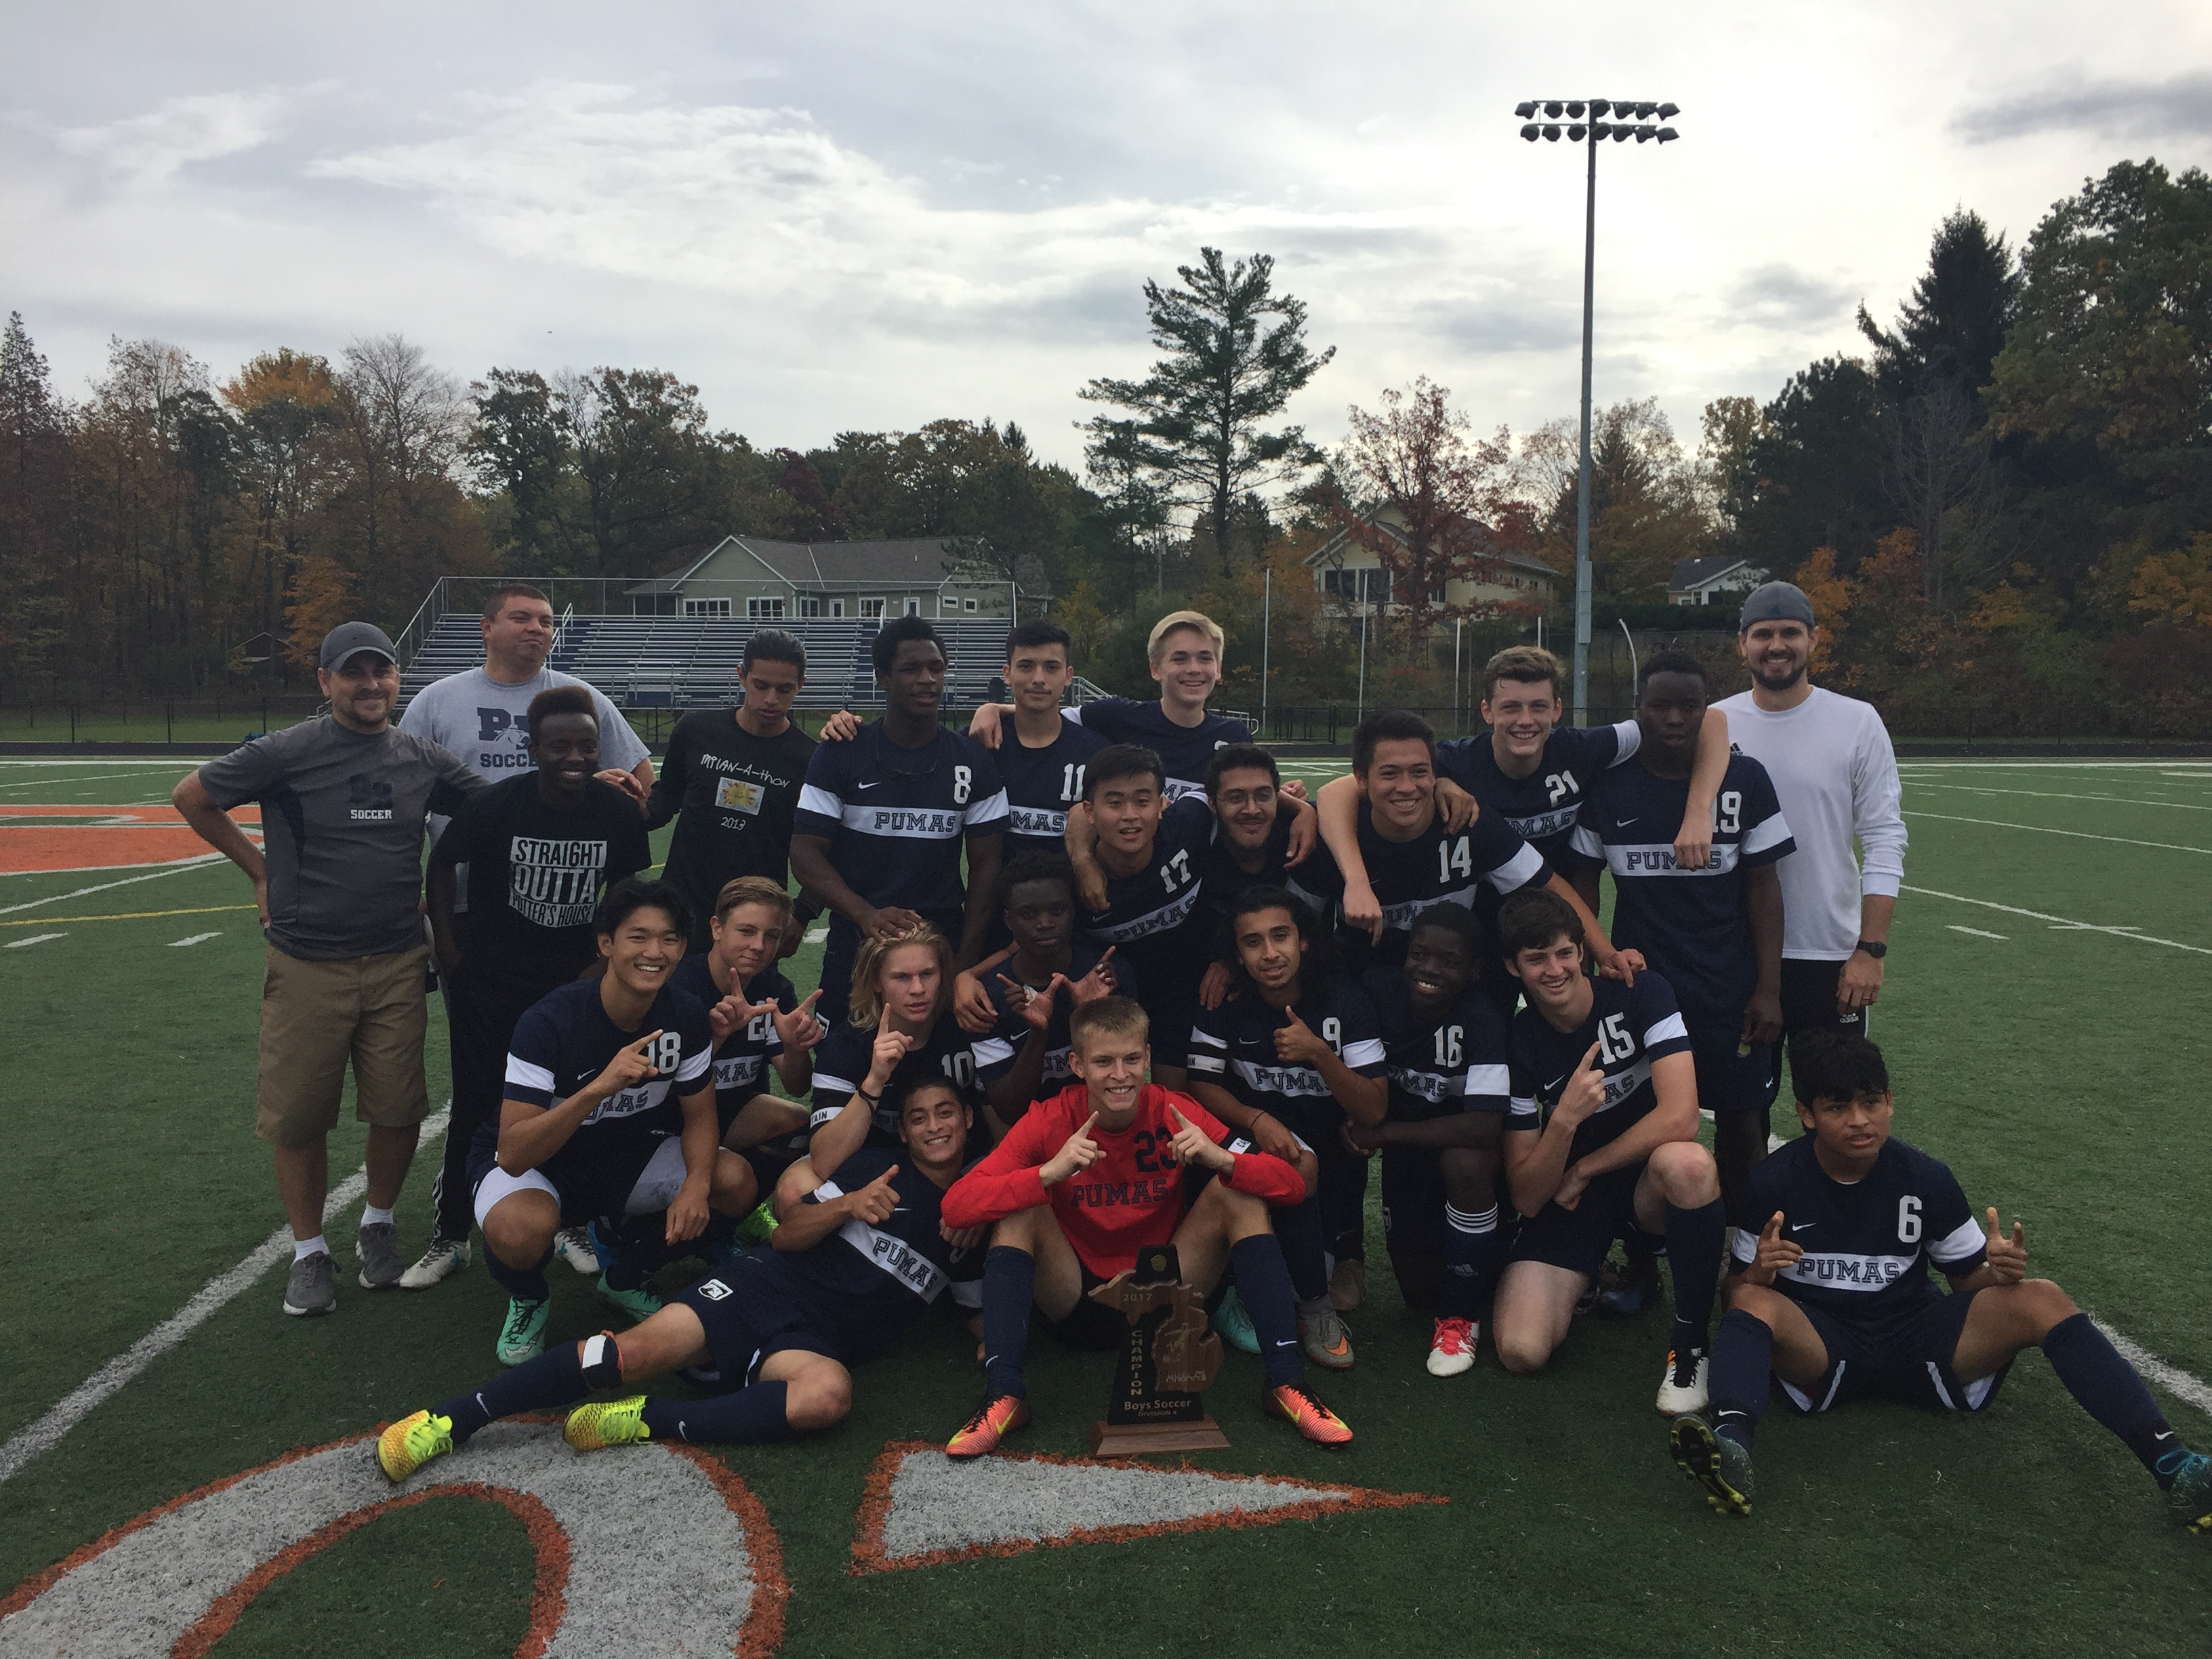 Boys Soccer Brings Home the District Championship for 2nd Time in School History